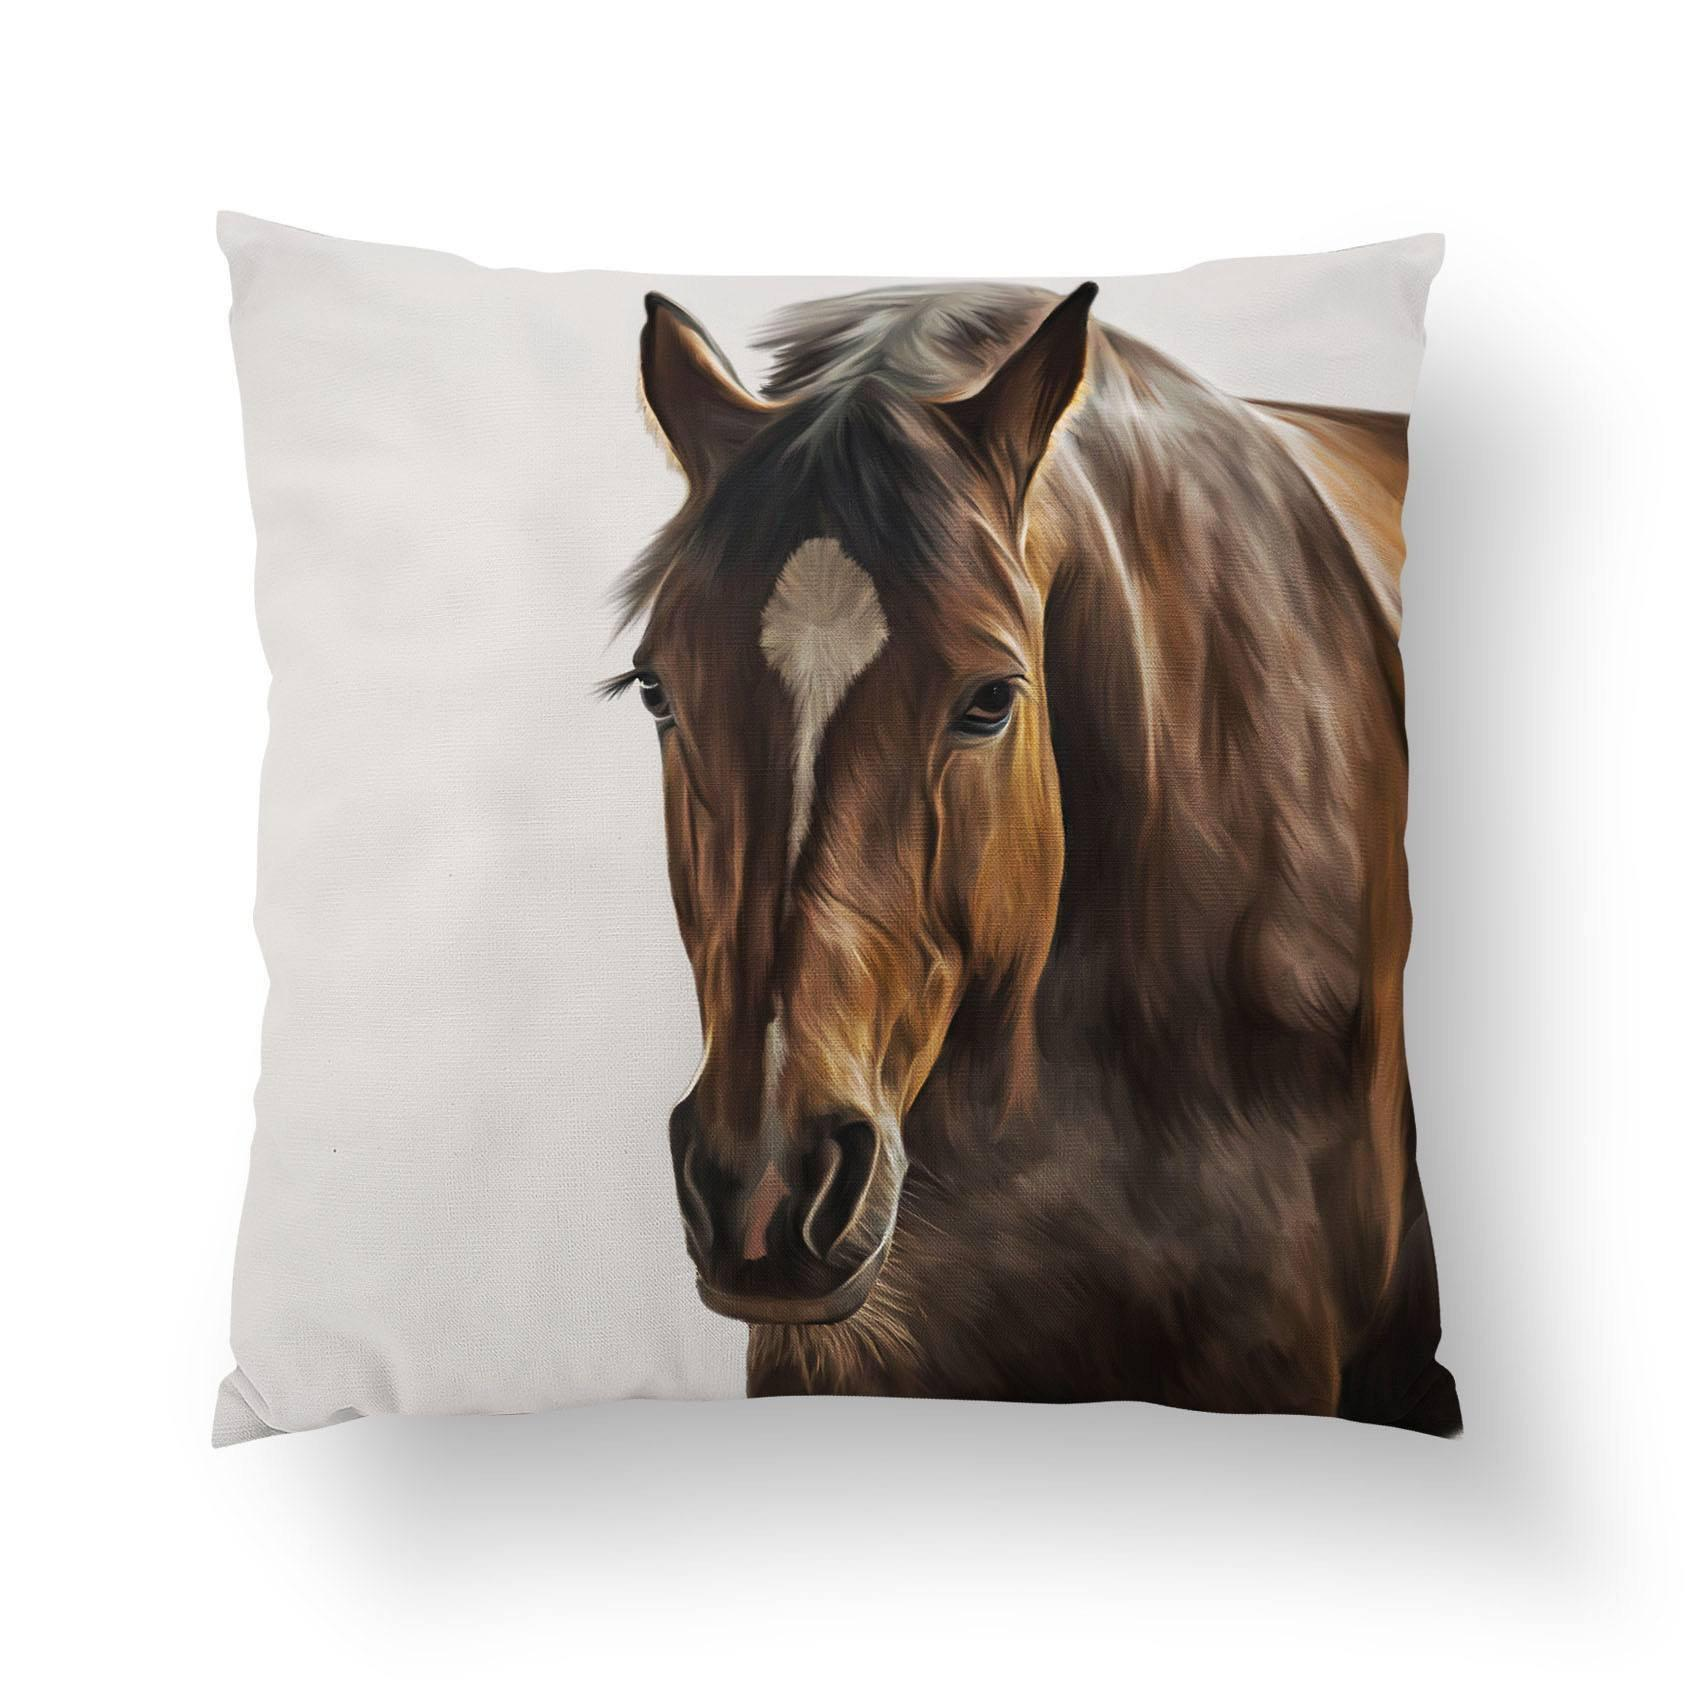 Horse Pillow - Pillow Covers - W.FRANCIS